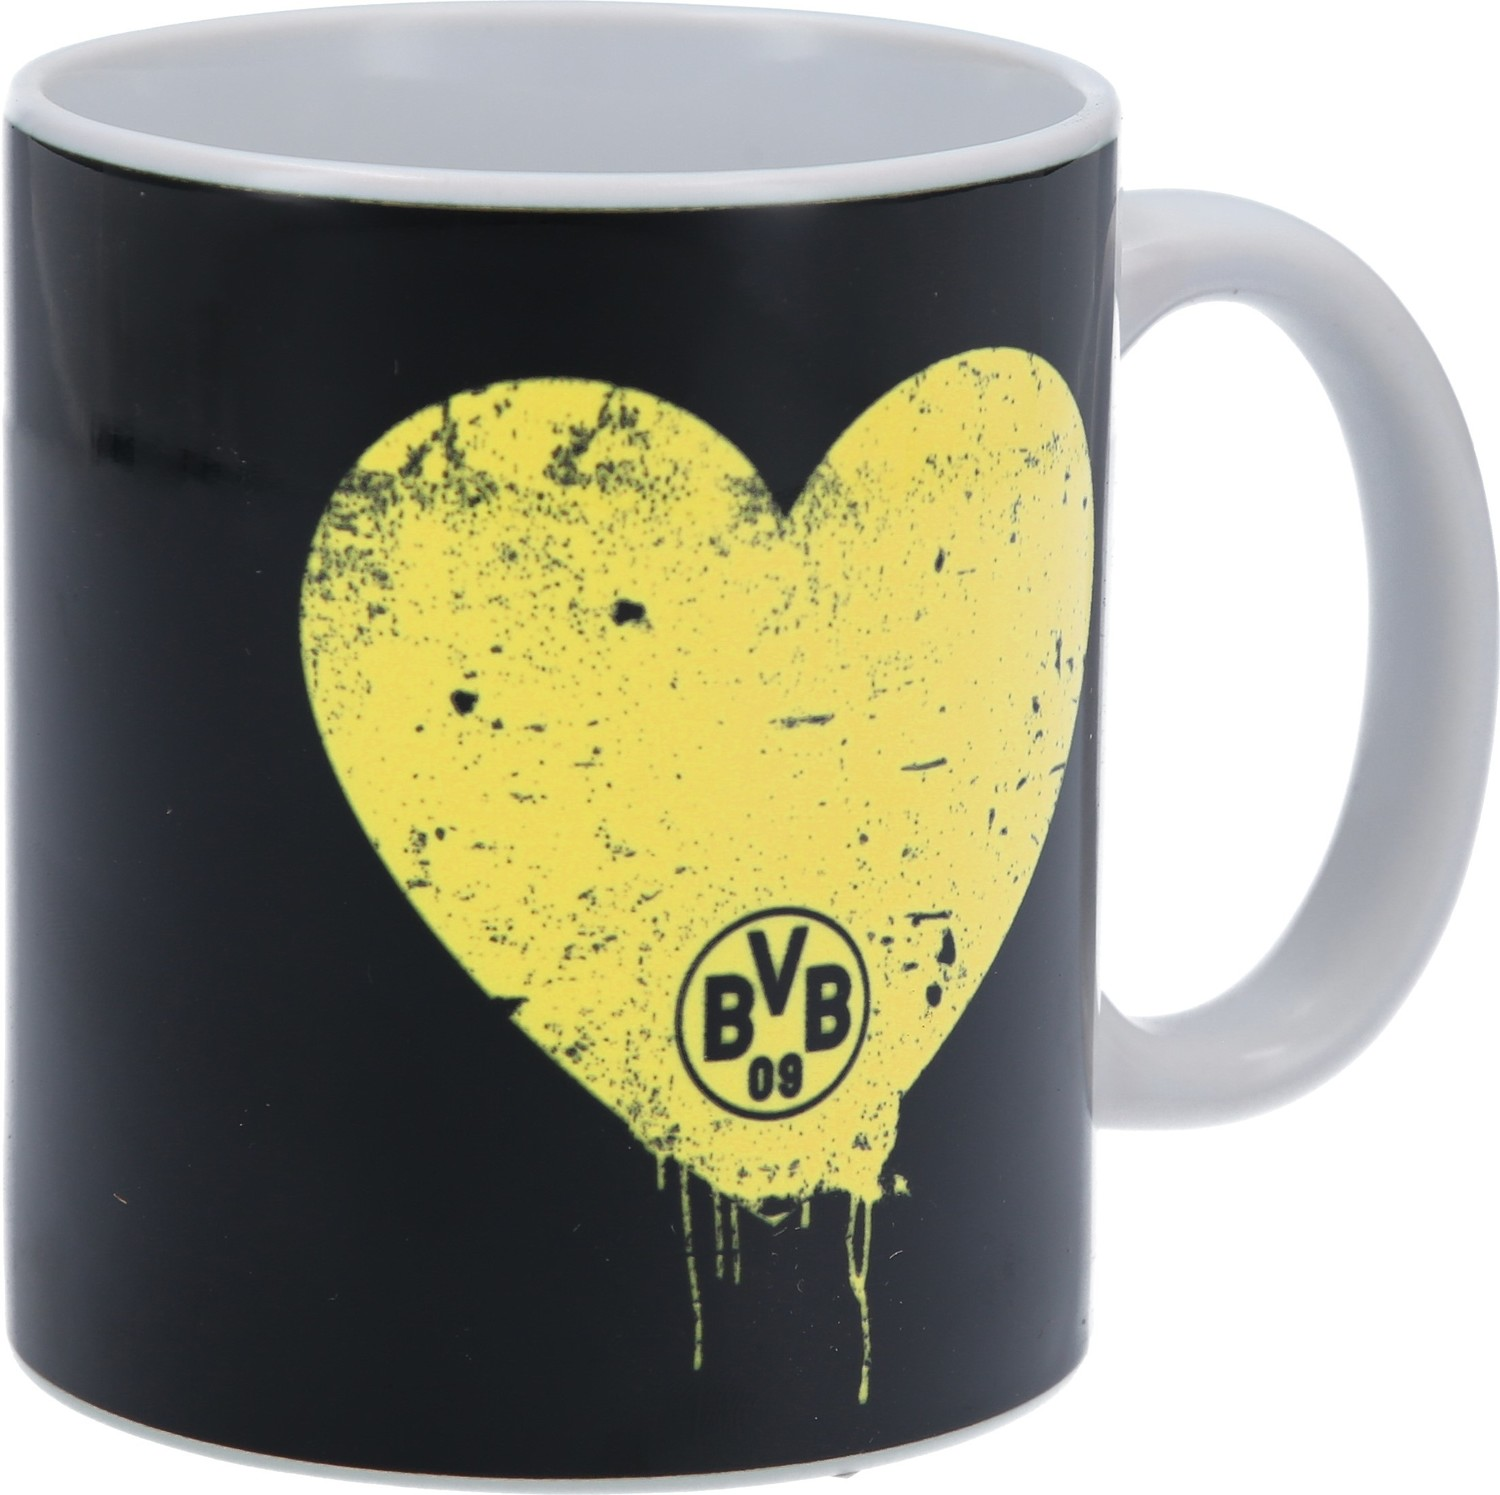 borussia dortmund tasse f r den besten papa 0 3l. Black Bedroom Furniture Sets. Home Design Ideas